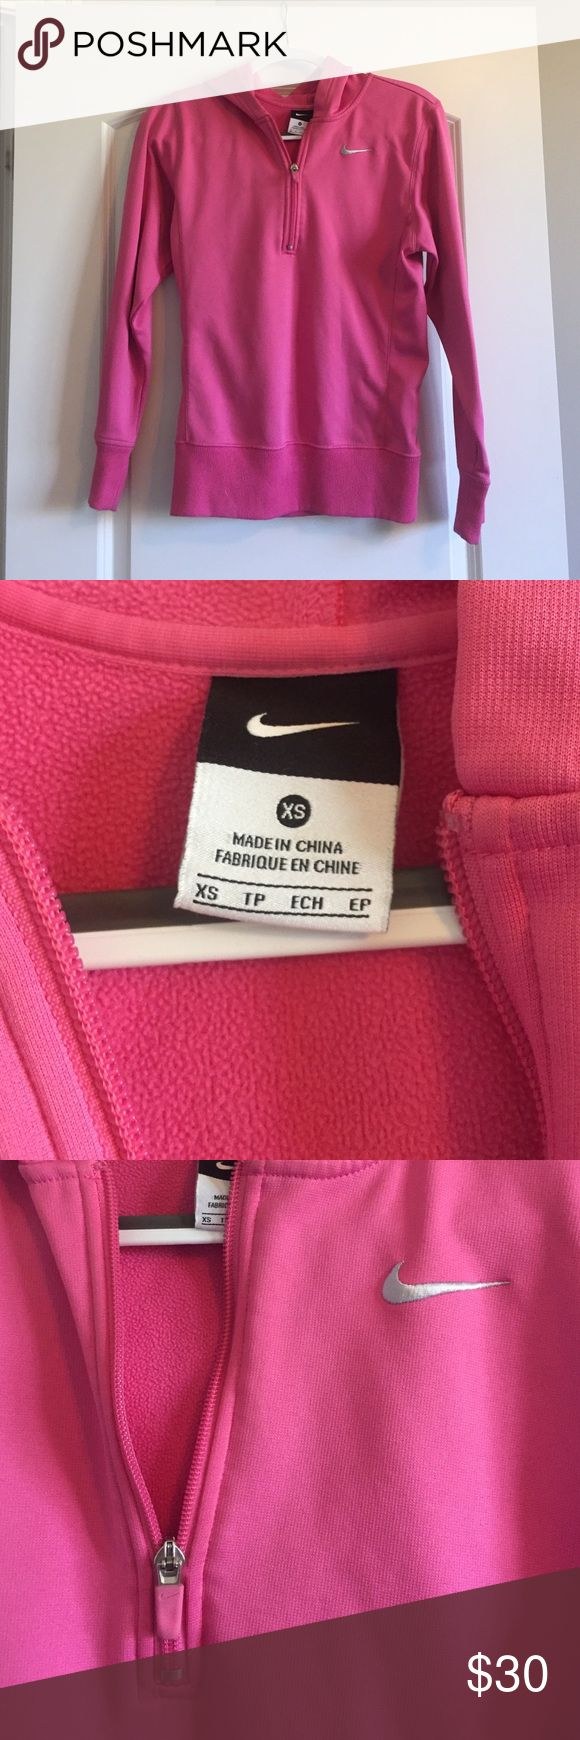 Pink Nike Fleece Hoodie with 1/4 zip Size XS but can fit a small, bright pink, fleece inside, athletic material, good used condition Nike Tops Sweatshirts & Hoodies